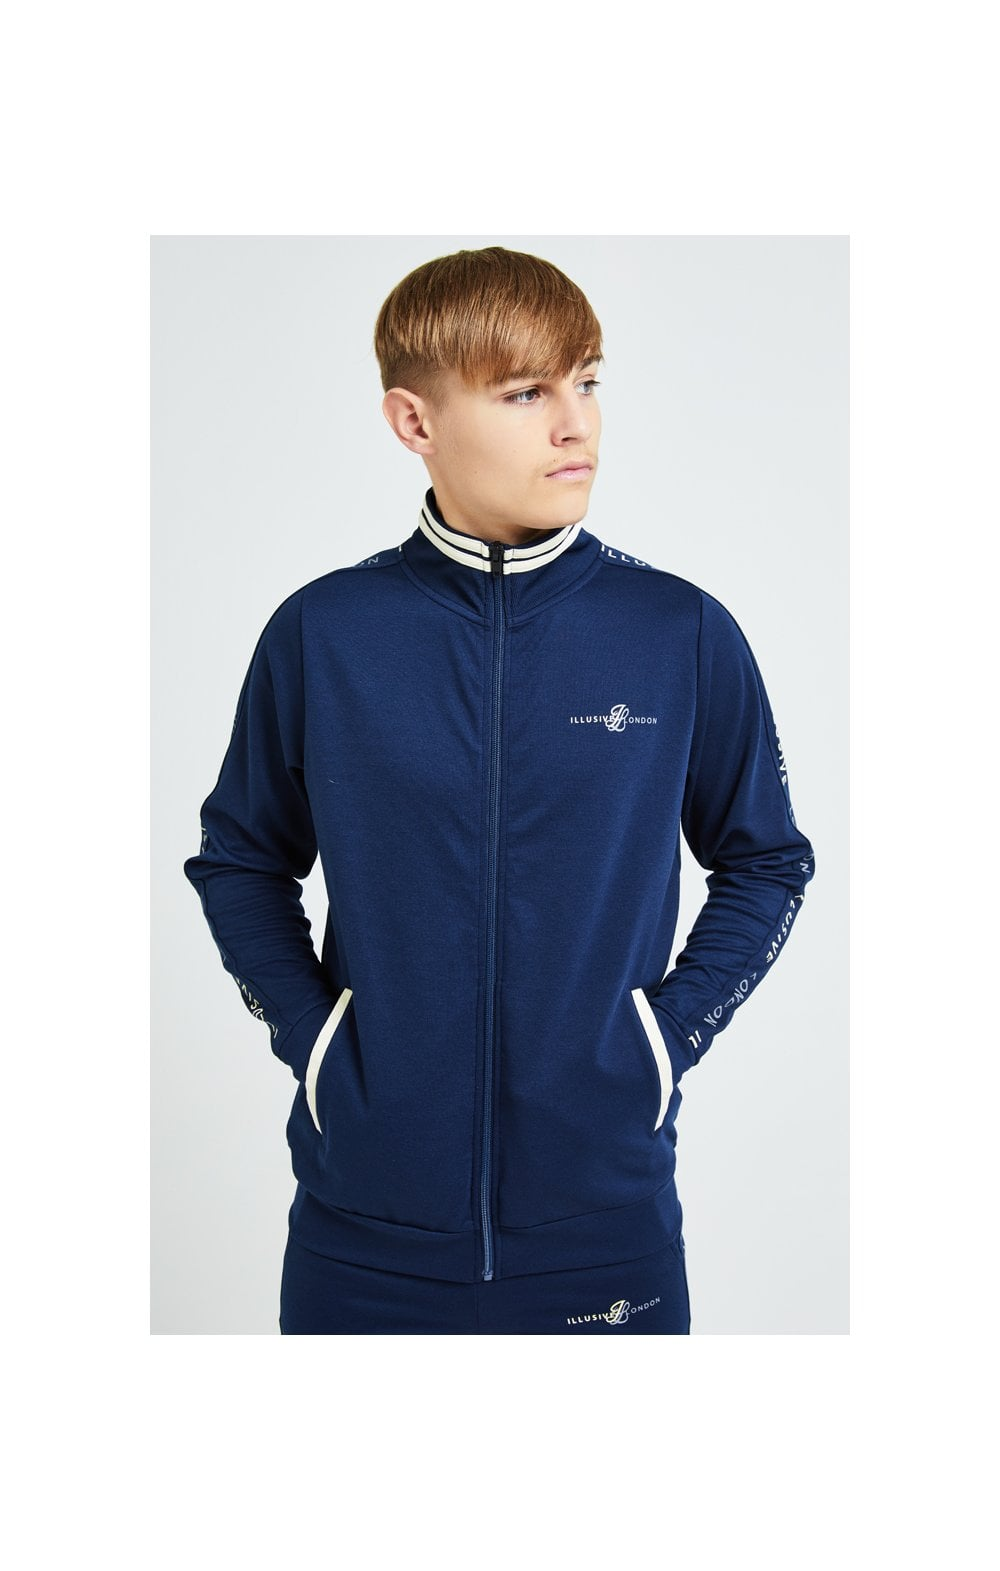 Illusive London Legacy Track Top - Navy & Cream (1)